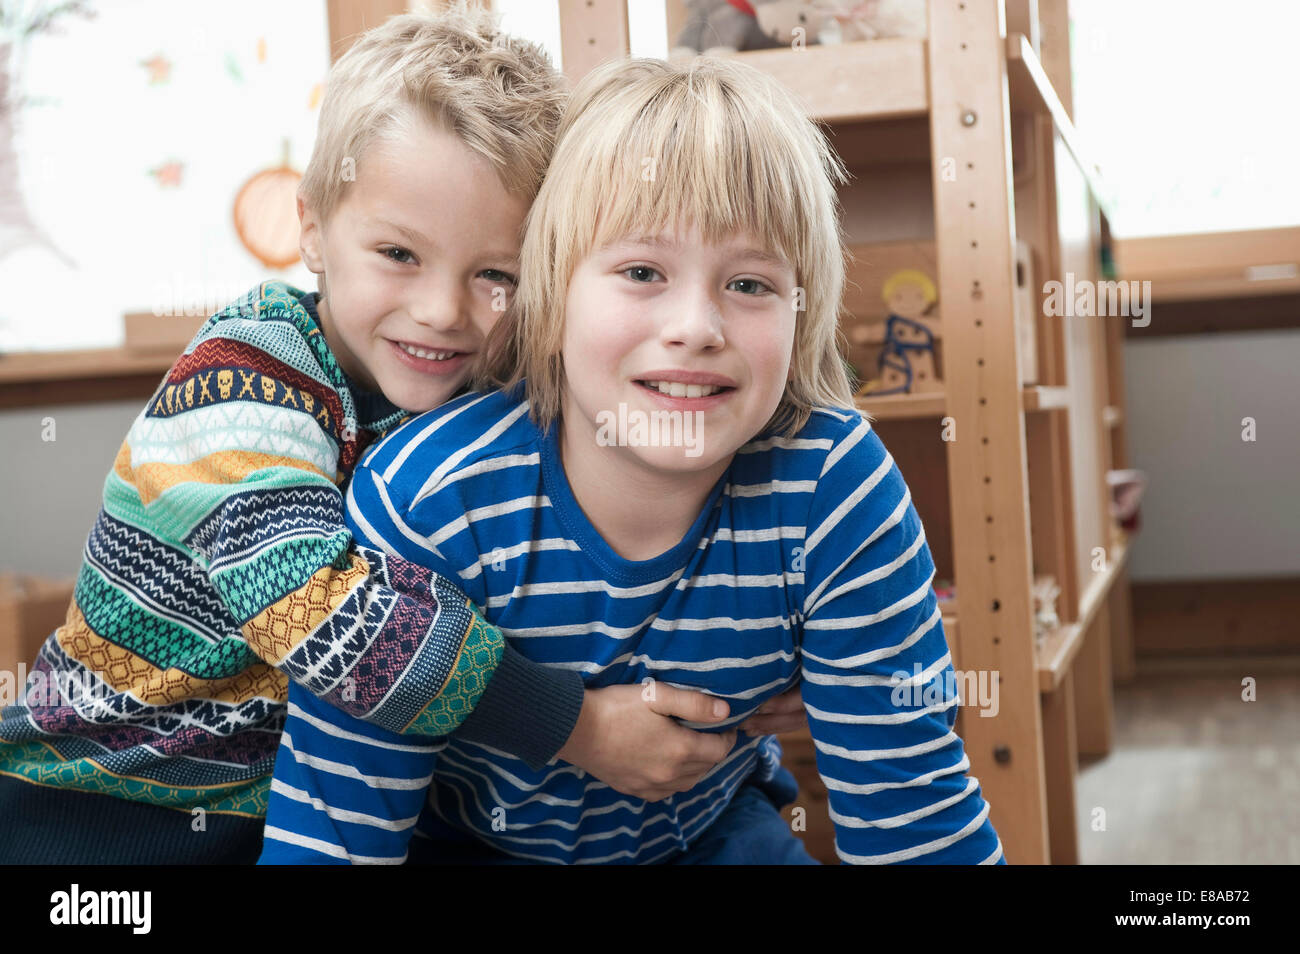 Two brothers side by side - Stock Image